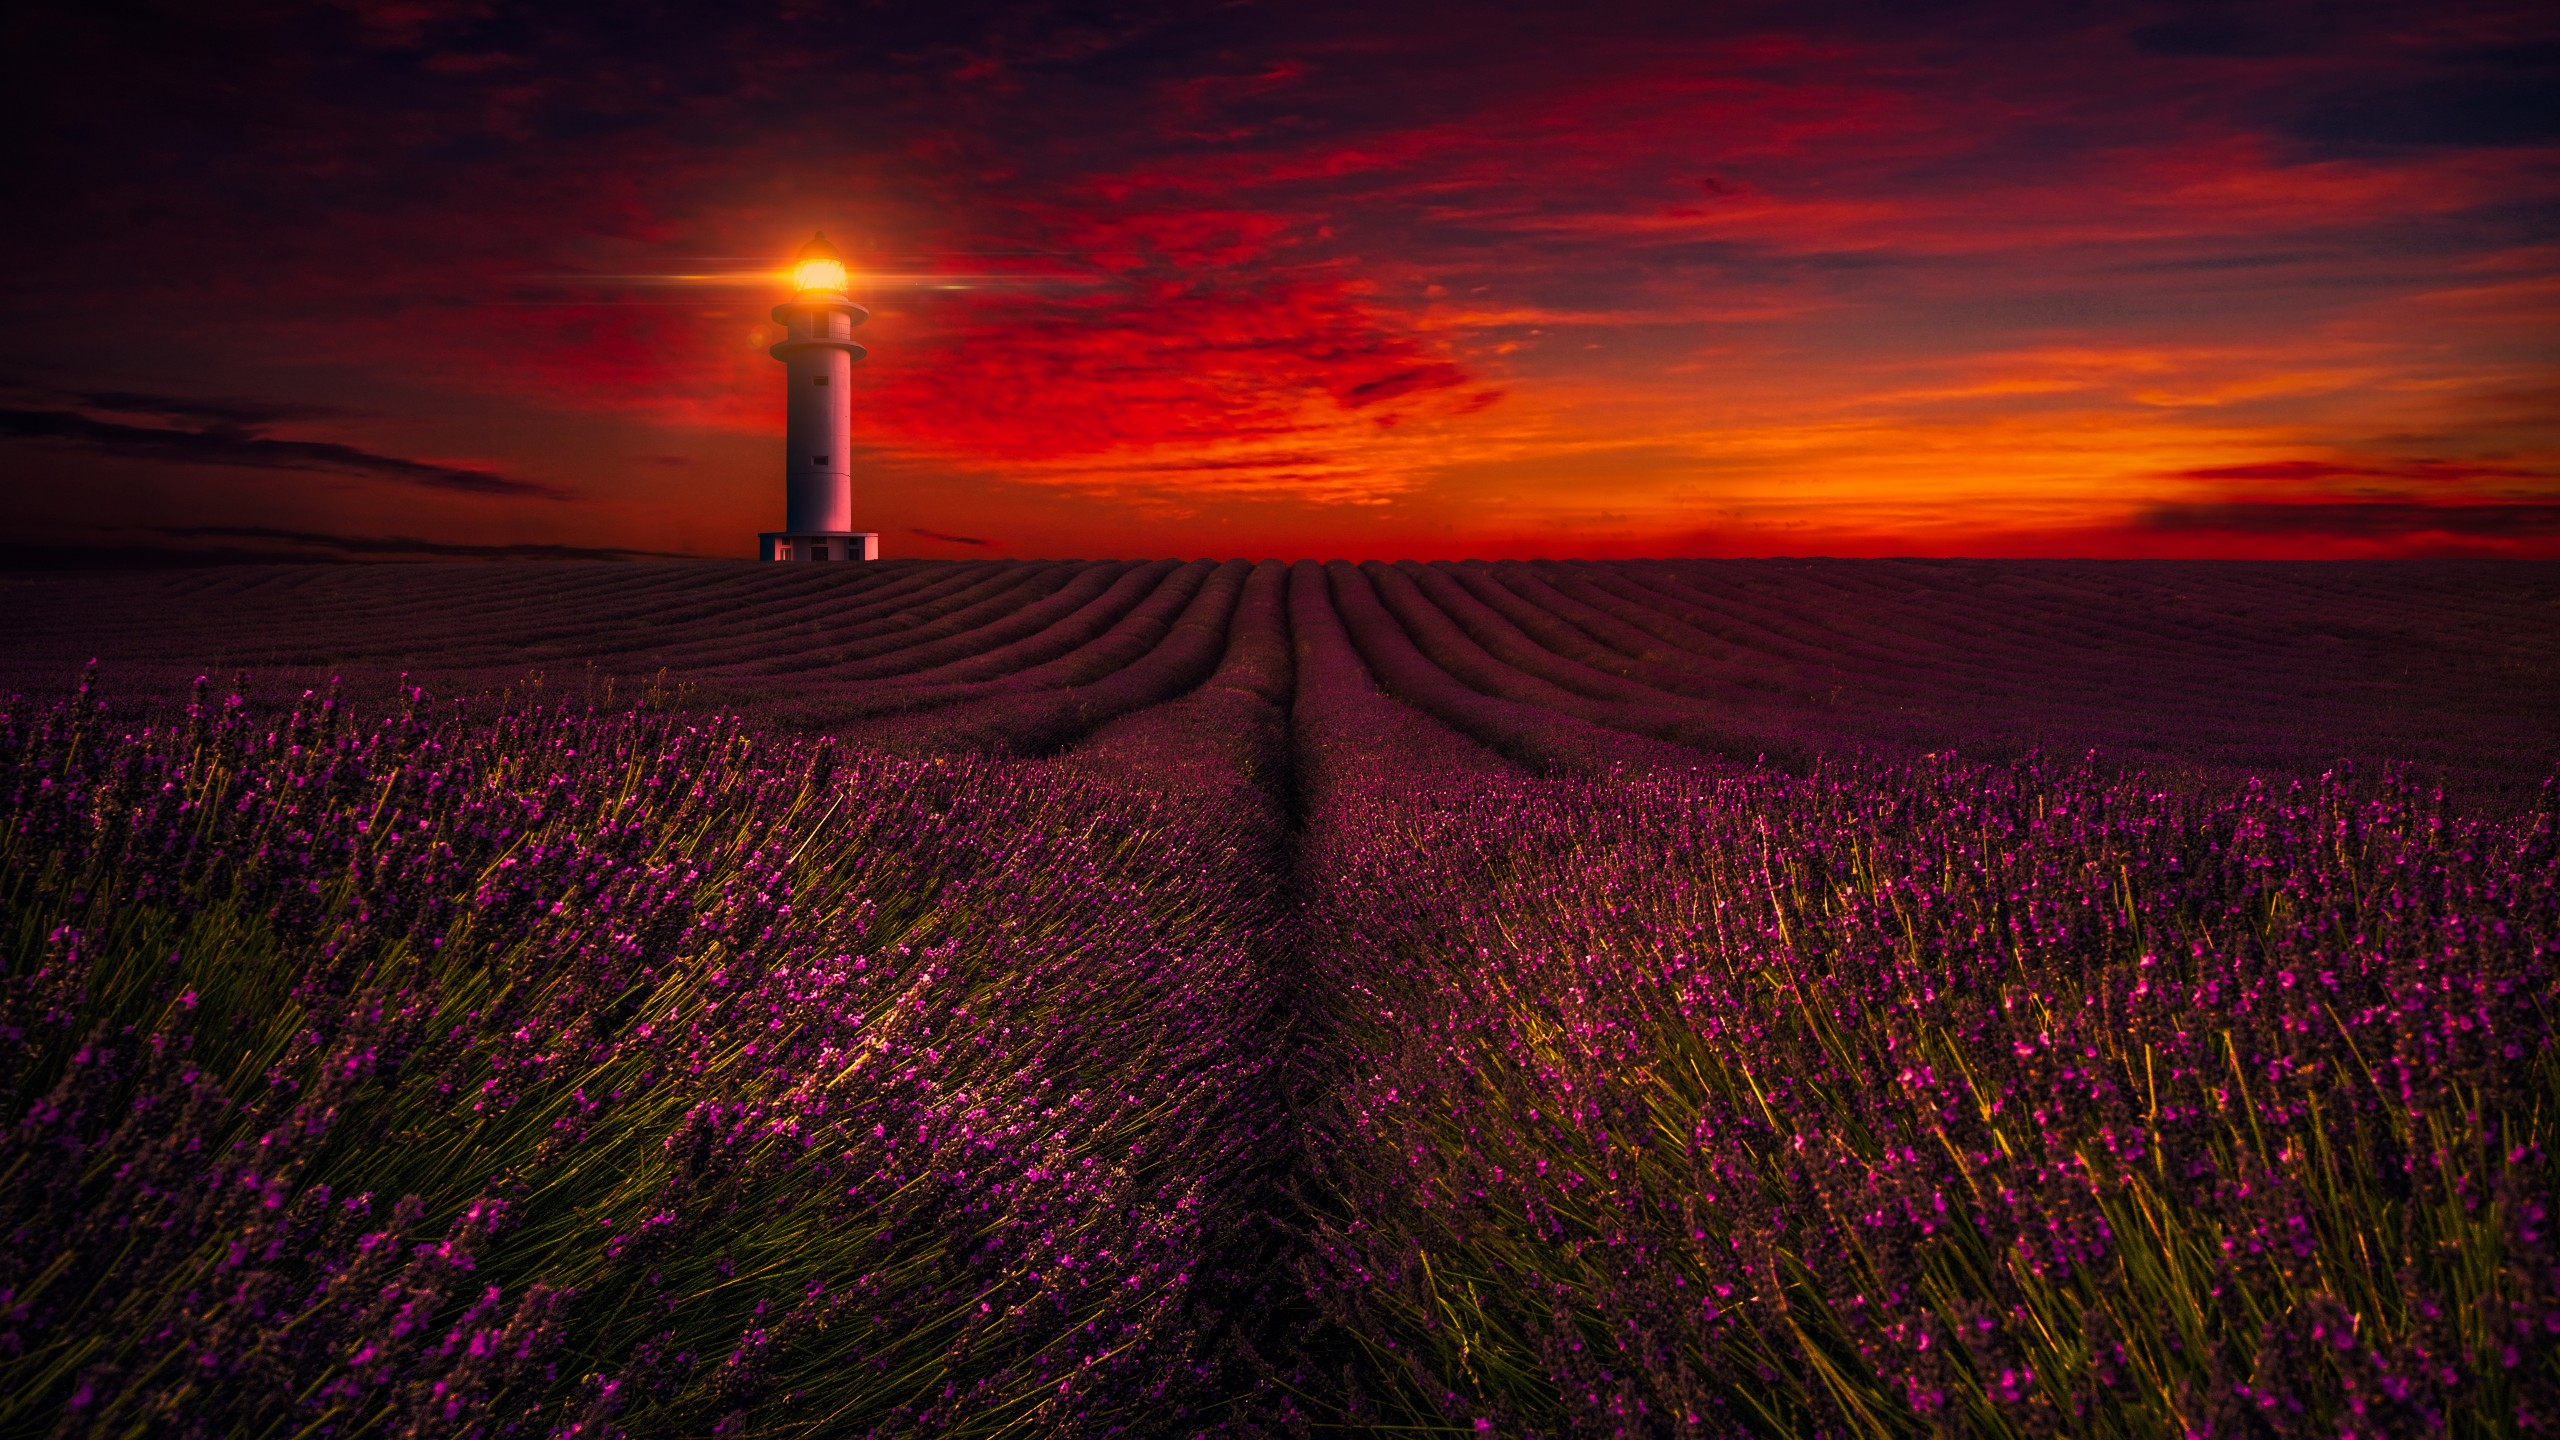 Cute Heart Images For Wallpaper Sunset Lavender Field Lighthouse 5k Wallpapers Hd